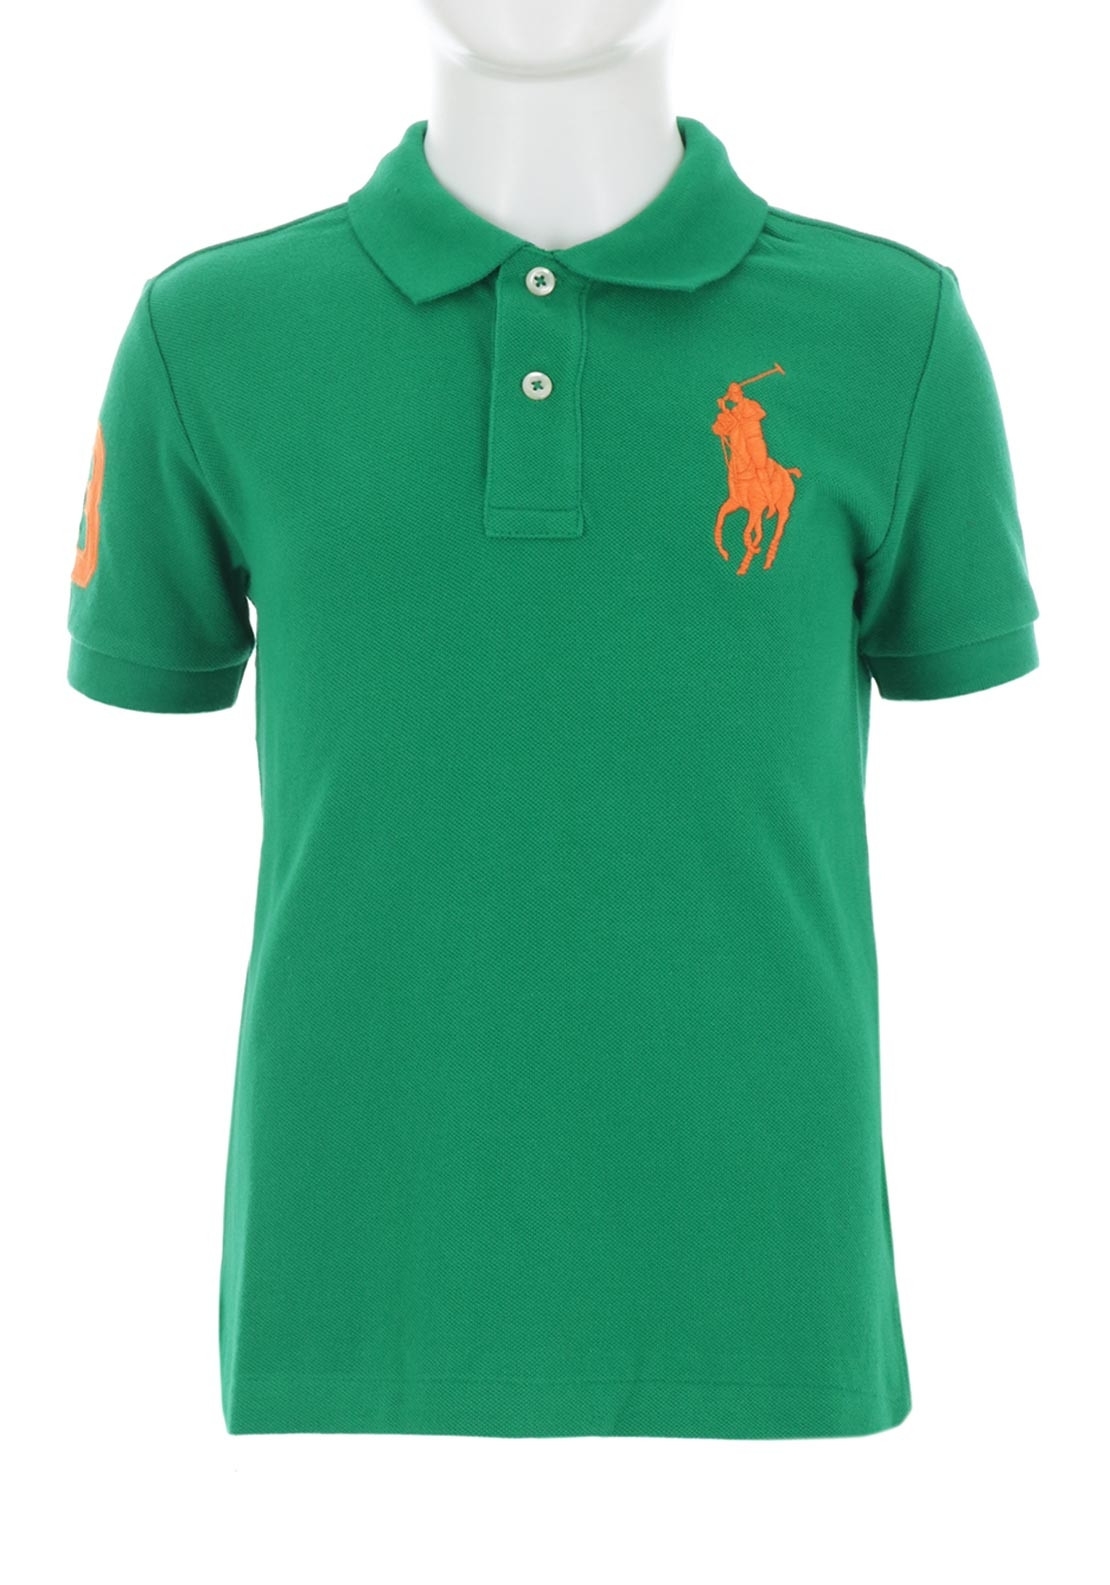 0a6b98632 Ralph Lauren Boys Polo Polo Shirt, Green. Be the first to review this  product